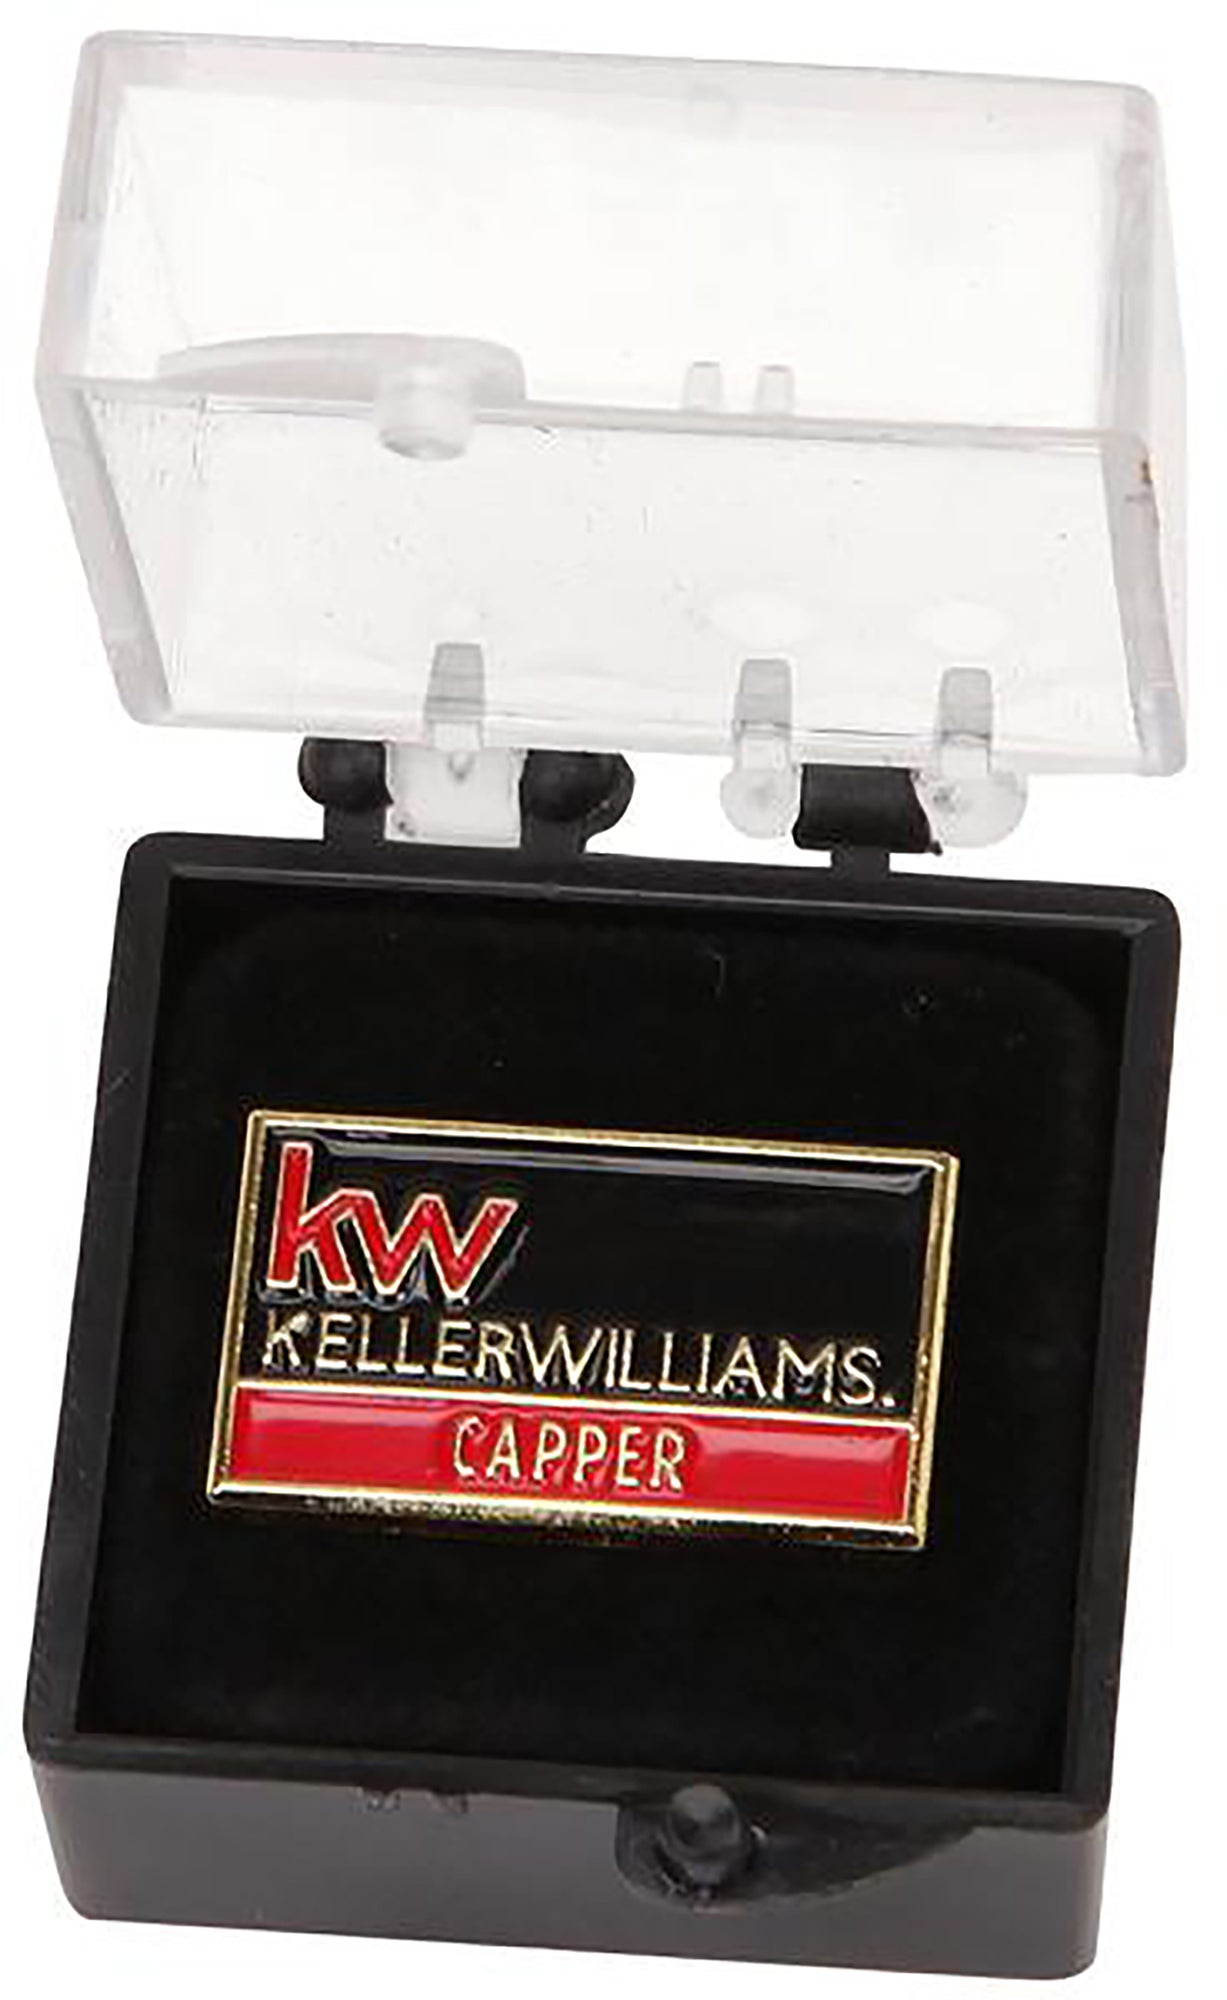 KW Capper Lapel Pin